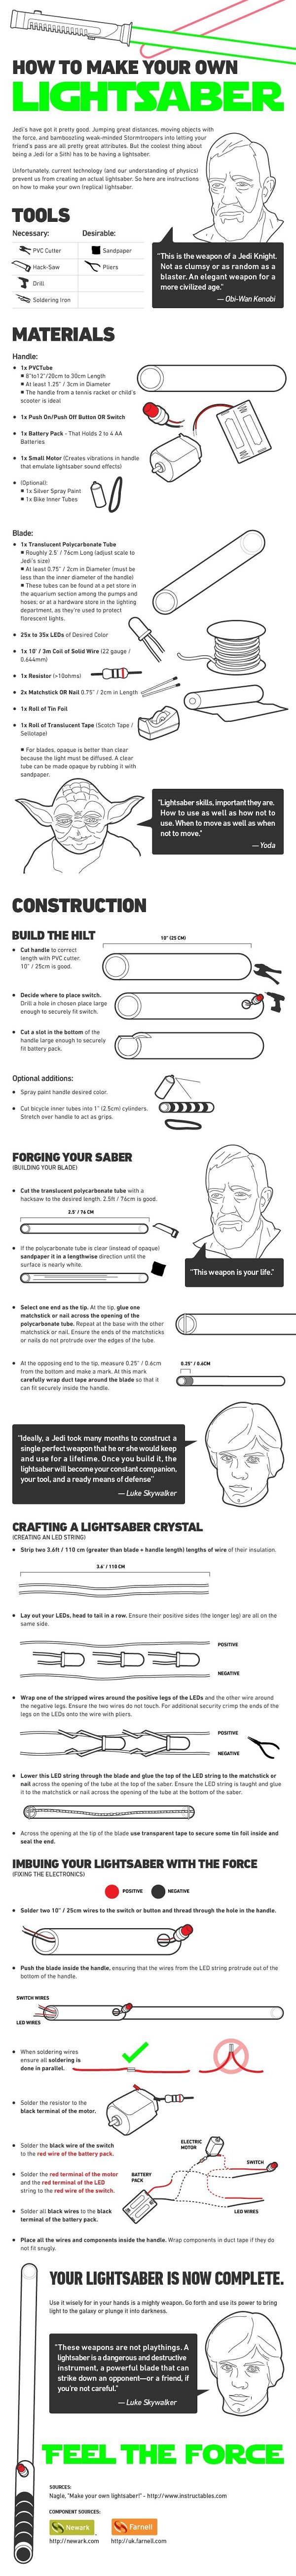 infographic-lightsaber